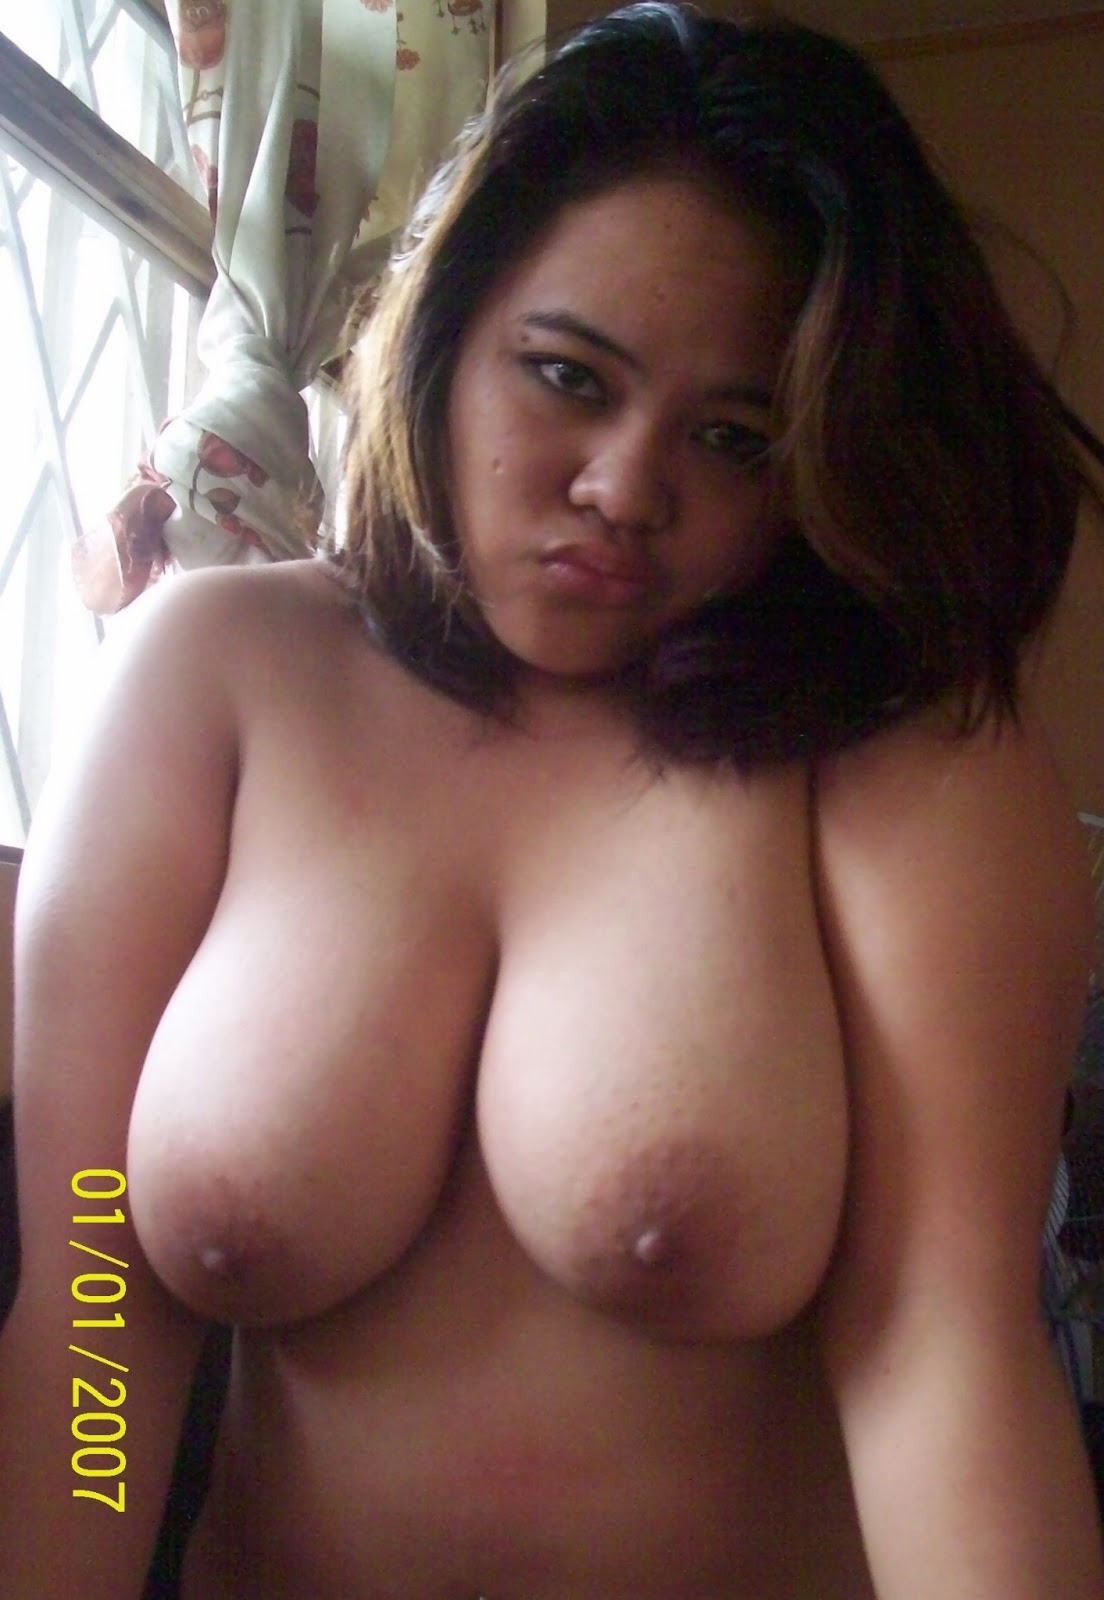 Nude sister huge boobs